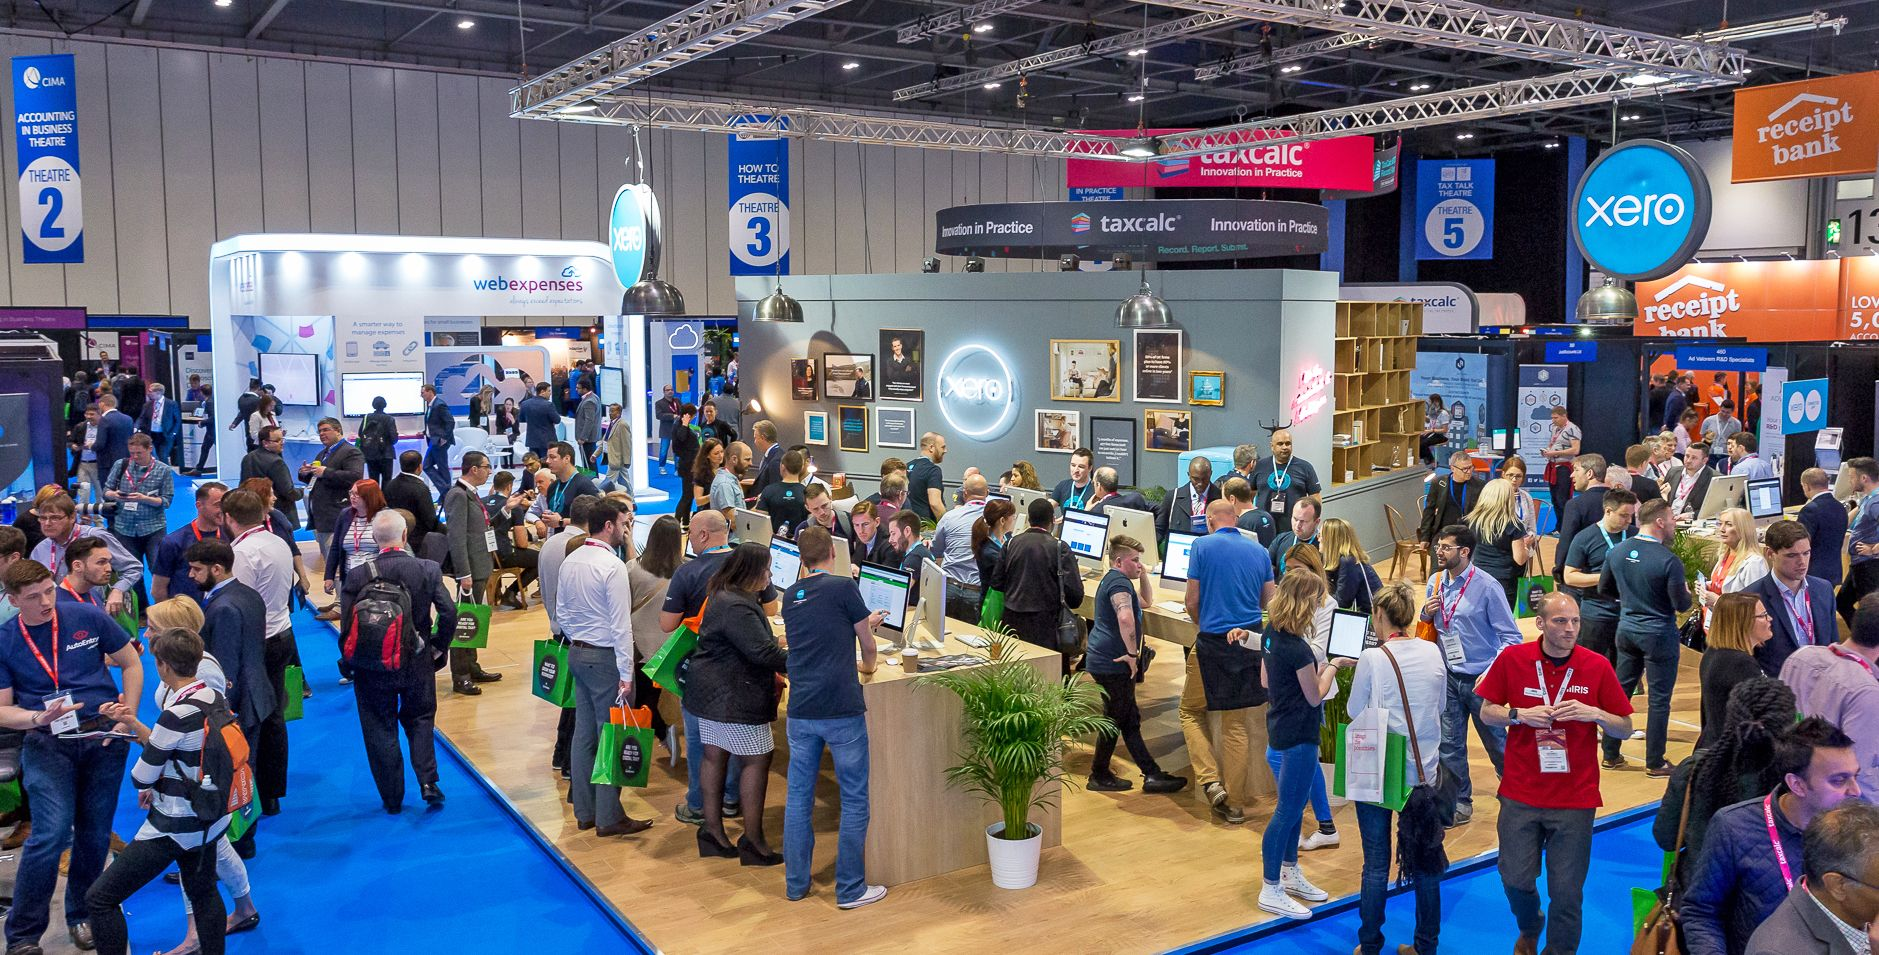 Blog_Top reasons to attend Accountex 2019